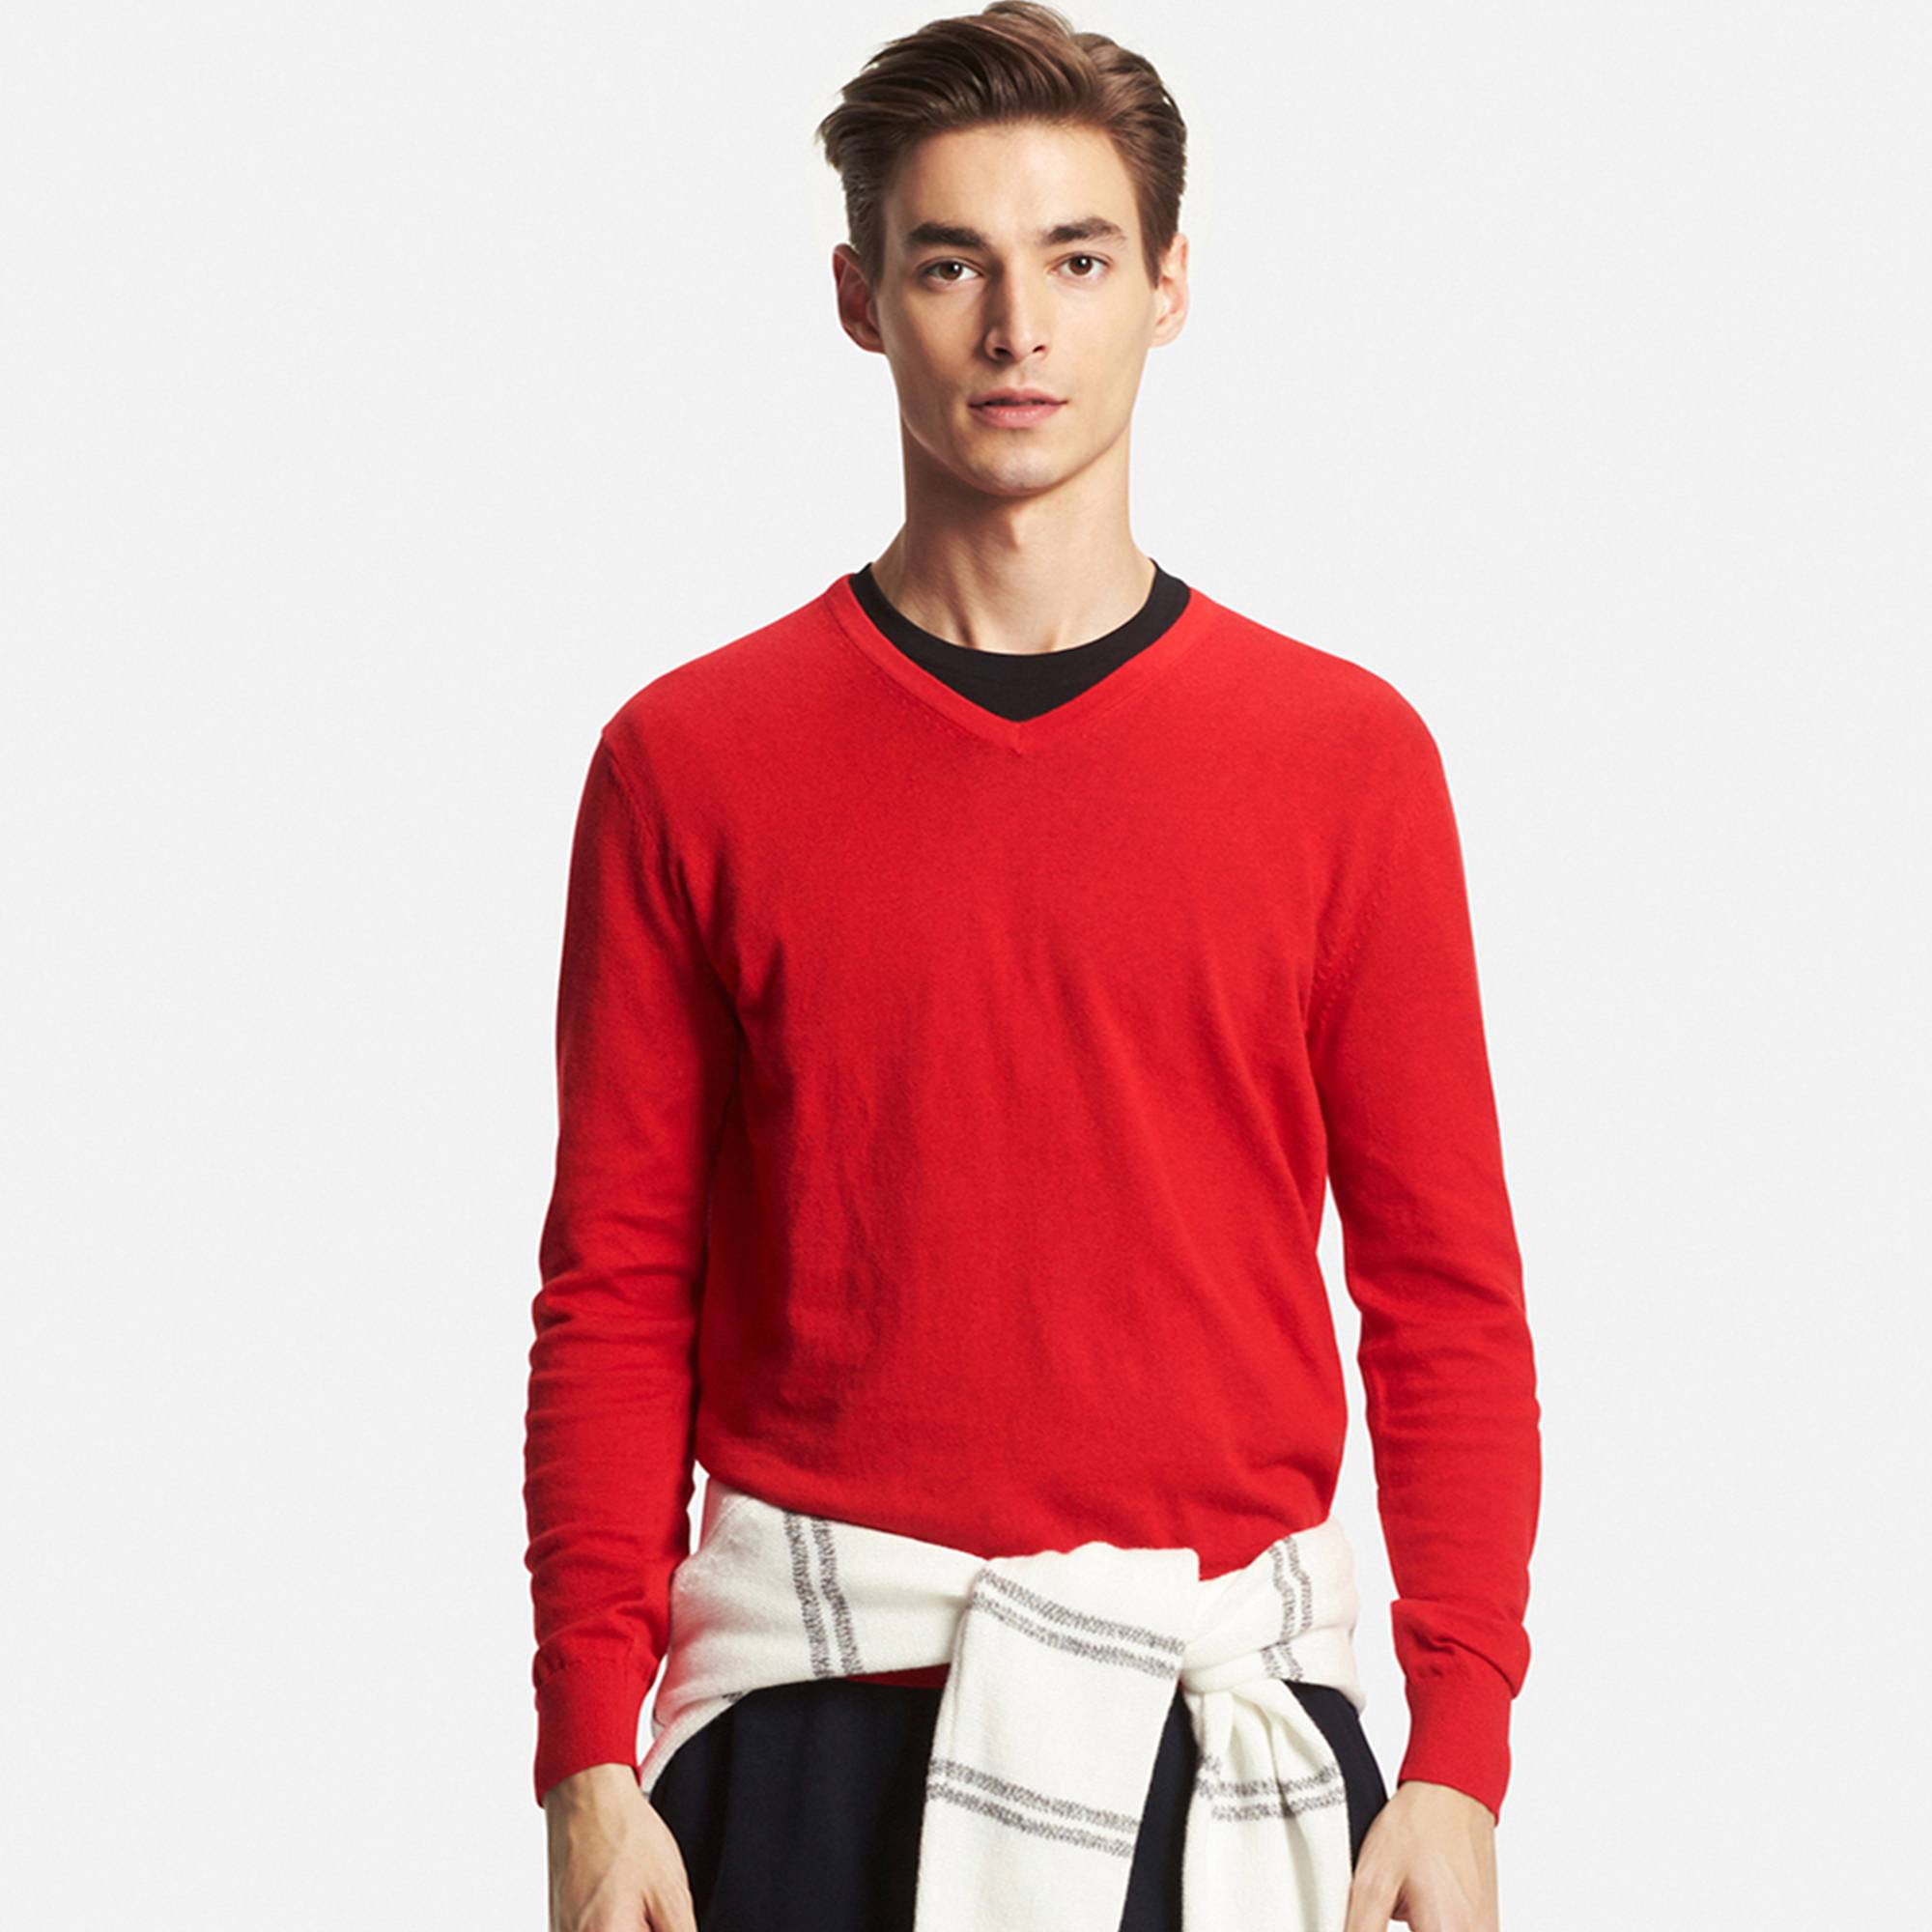 cotton Sweater outfits for men – 17 Ways to Wear Sweaters Fashionably